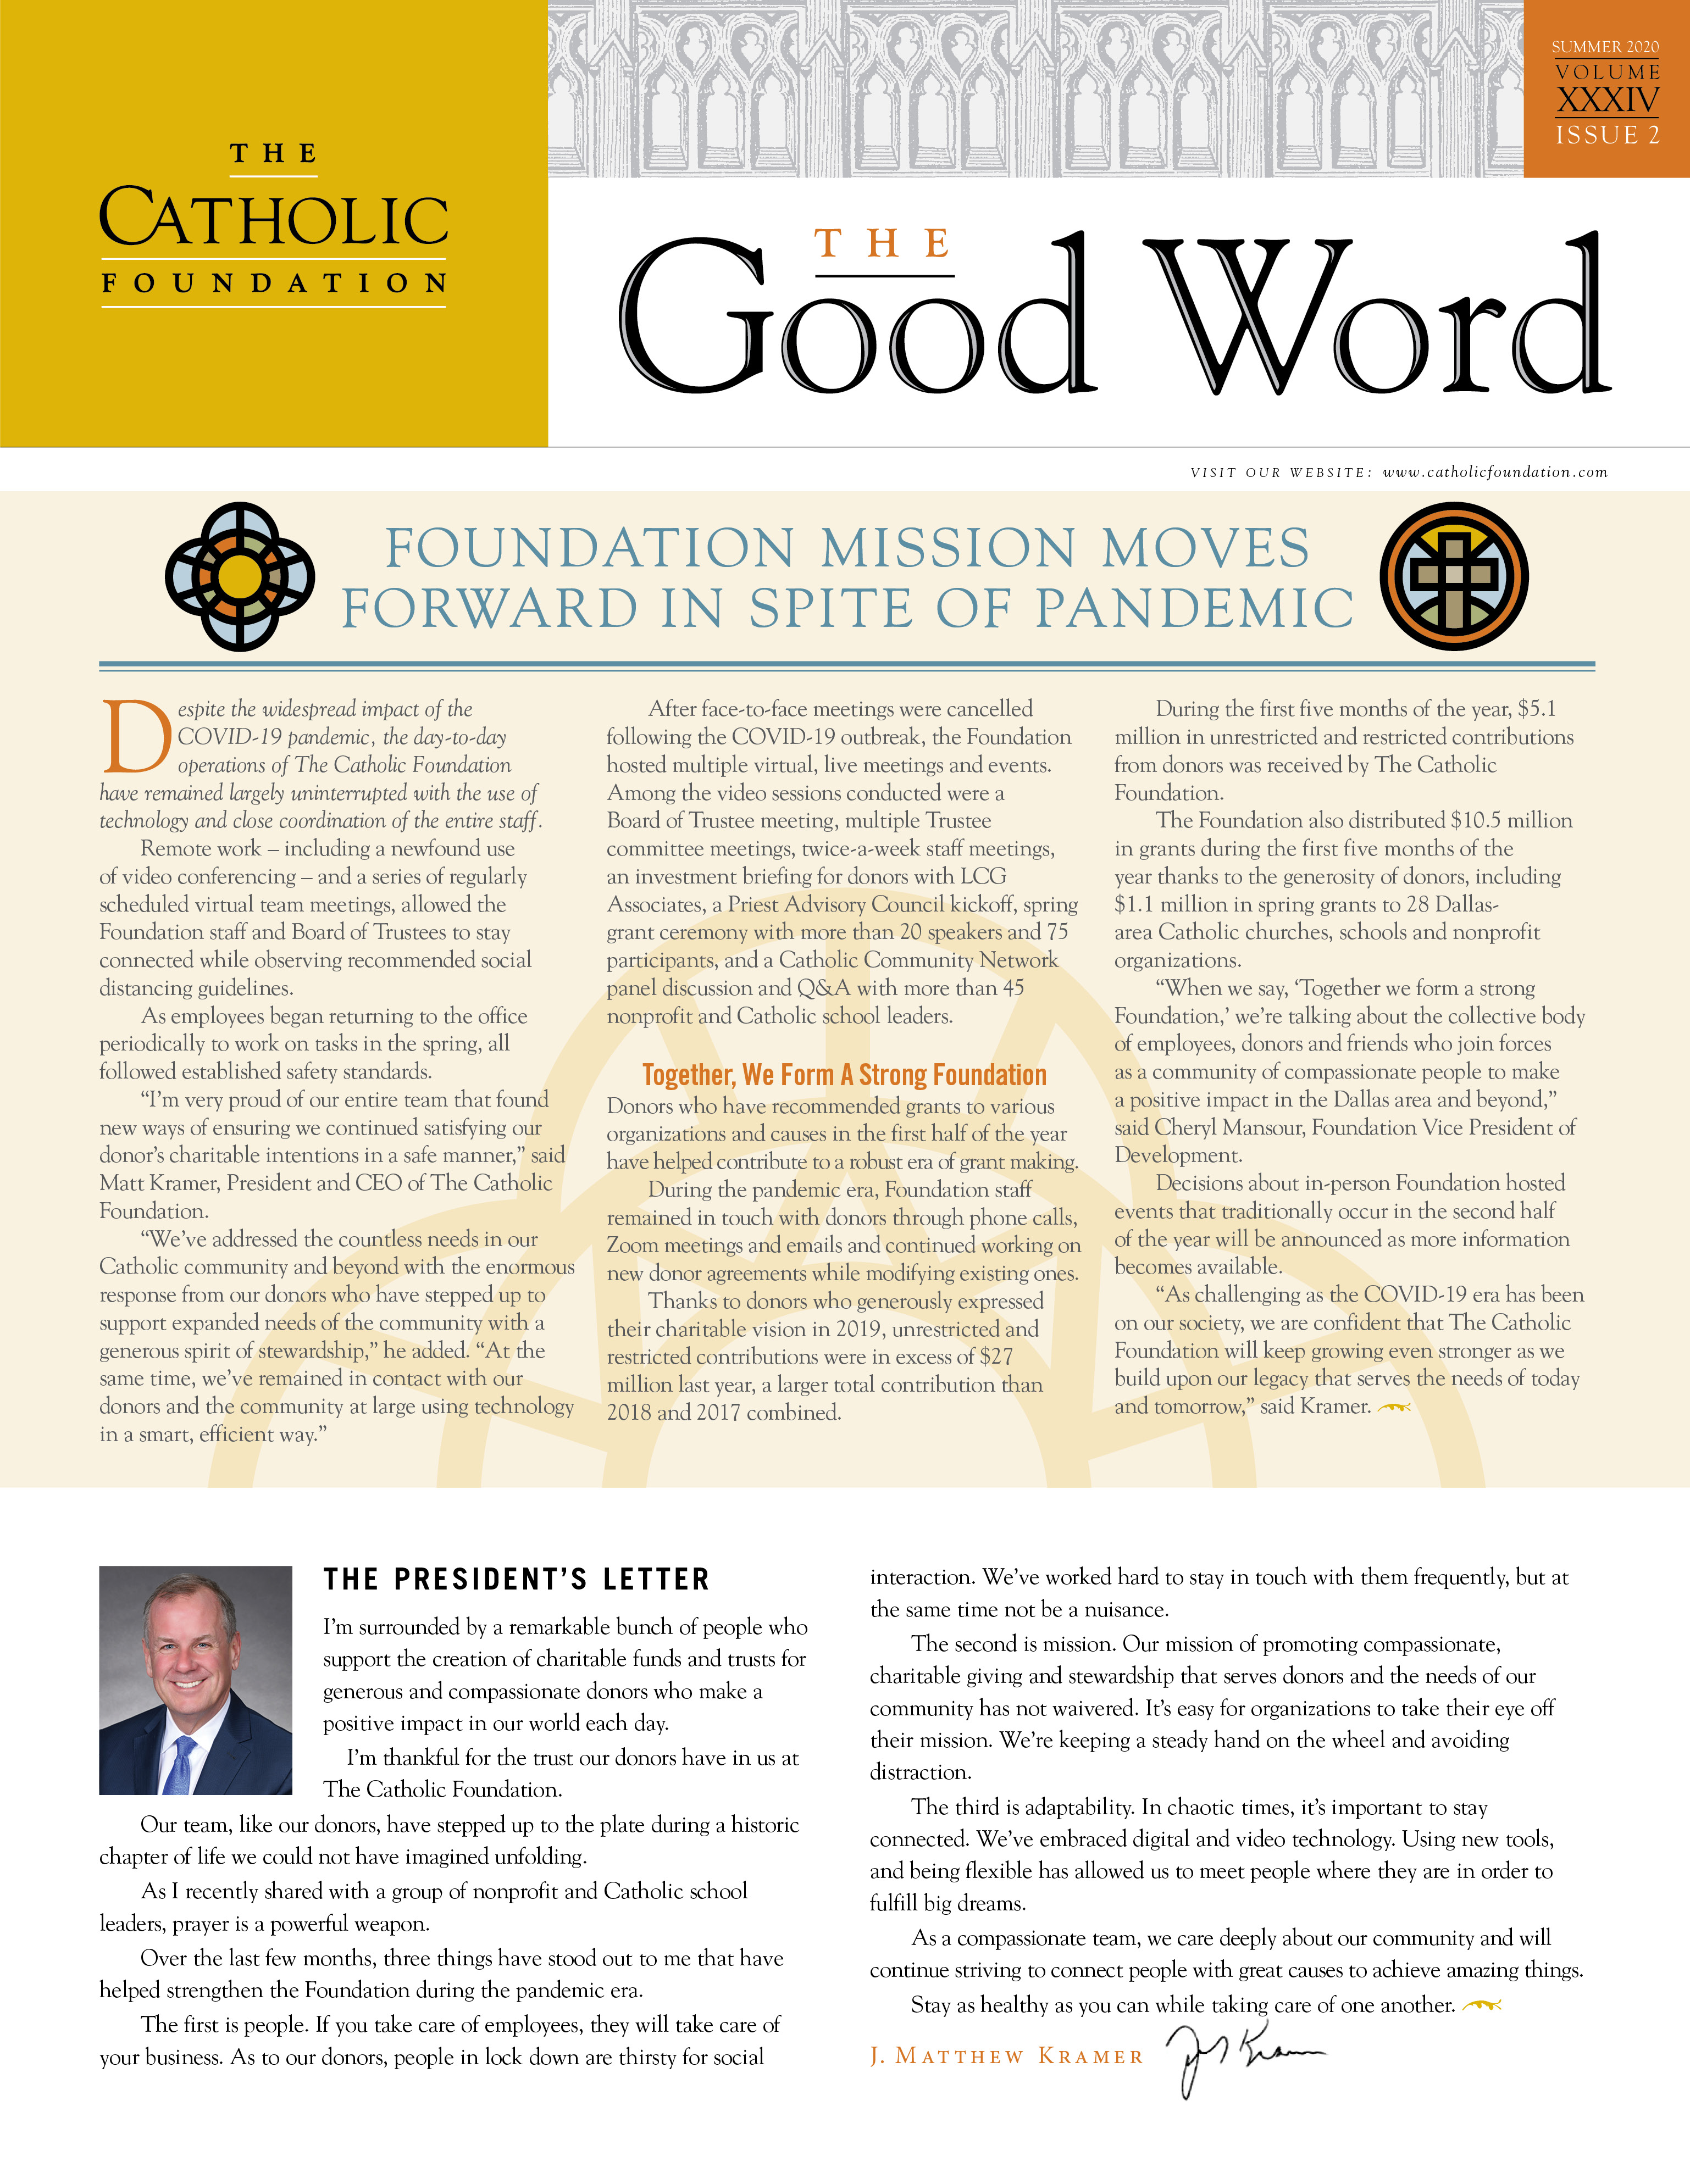 CF173 Summer 2020 The Good Word cover.jpg